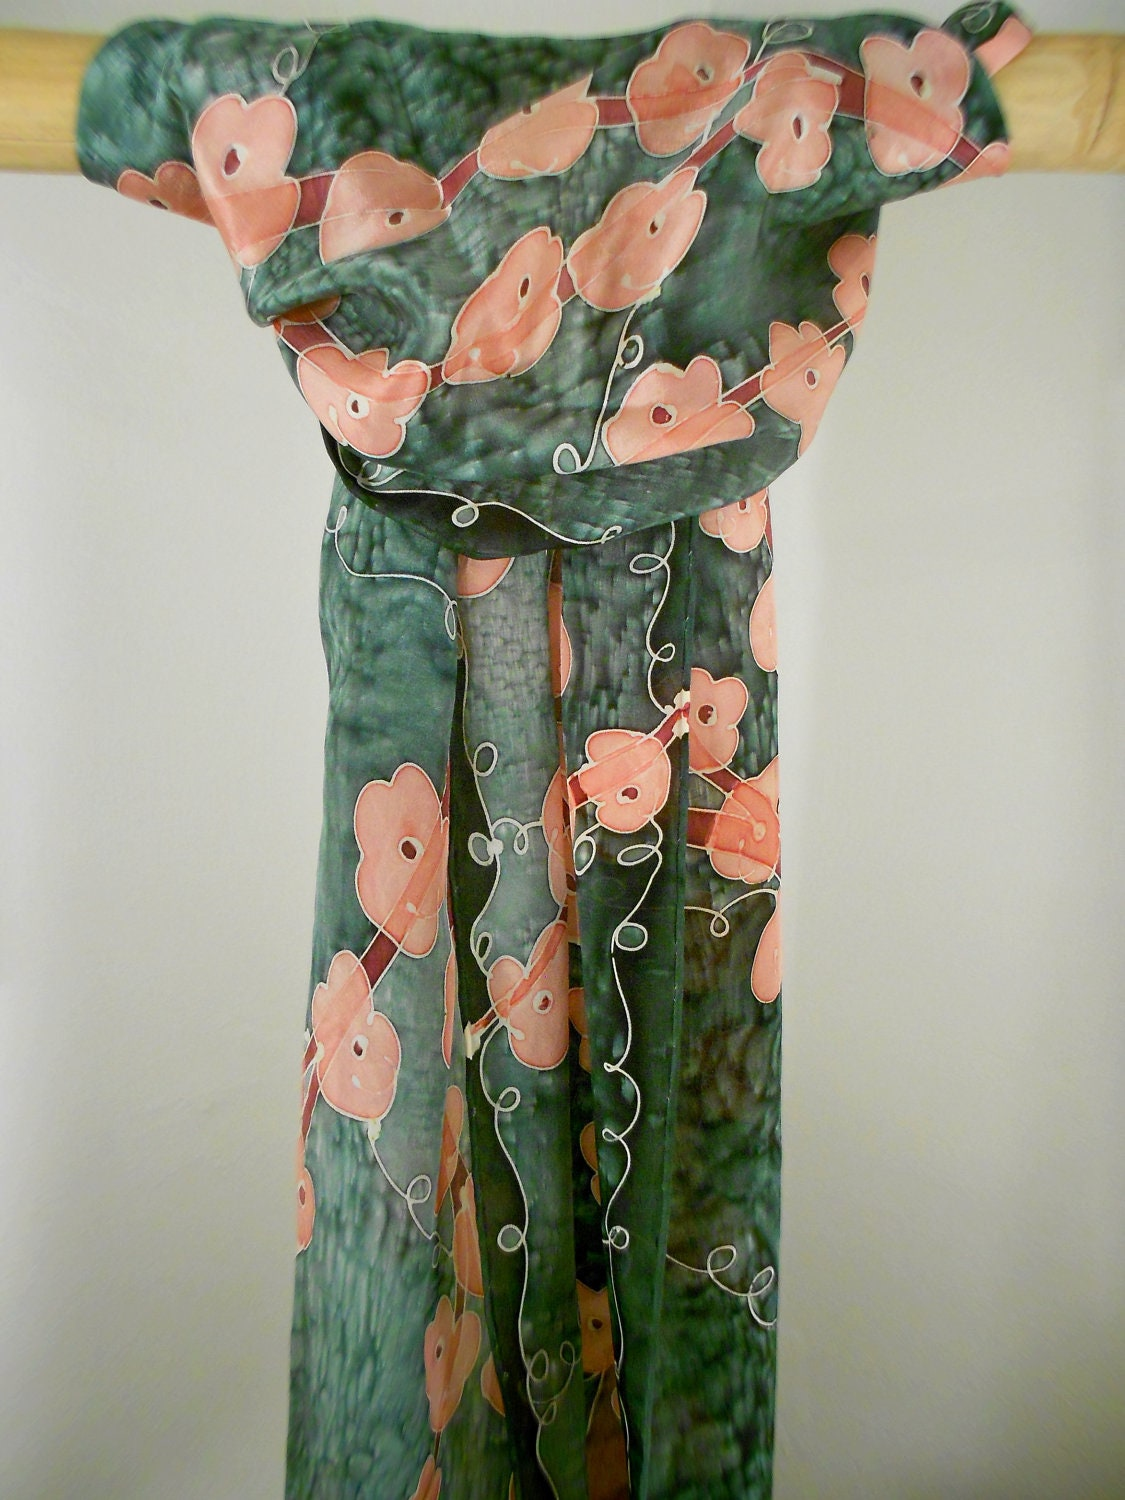 Peach and Olive Cherry Blossoms - Hand Painted Silk Scarf - CygnetSilks